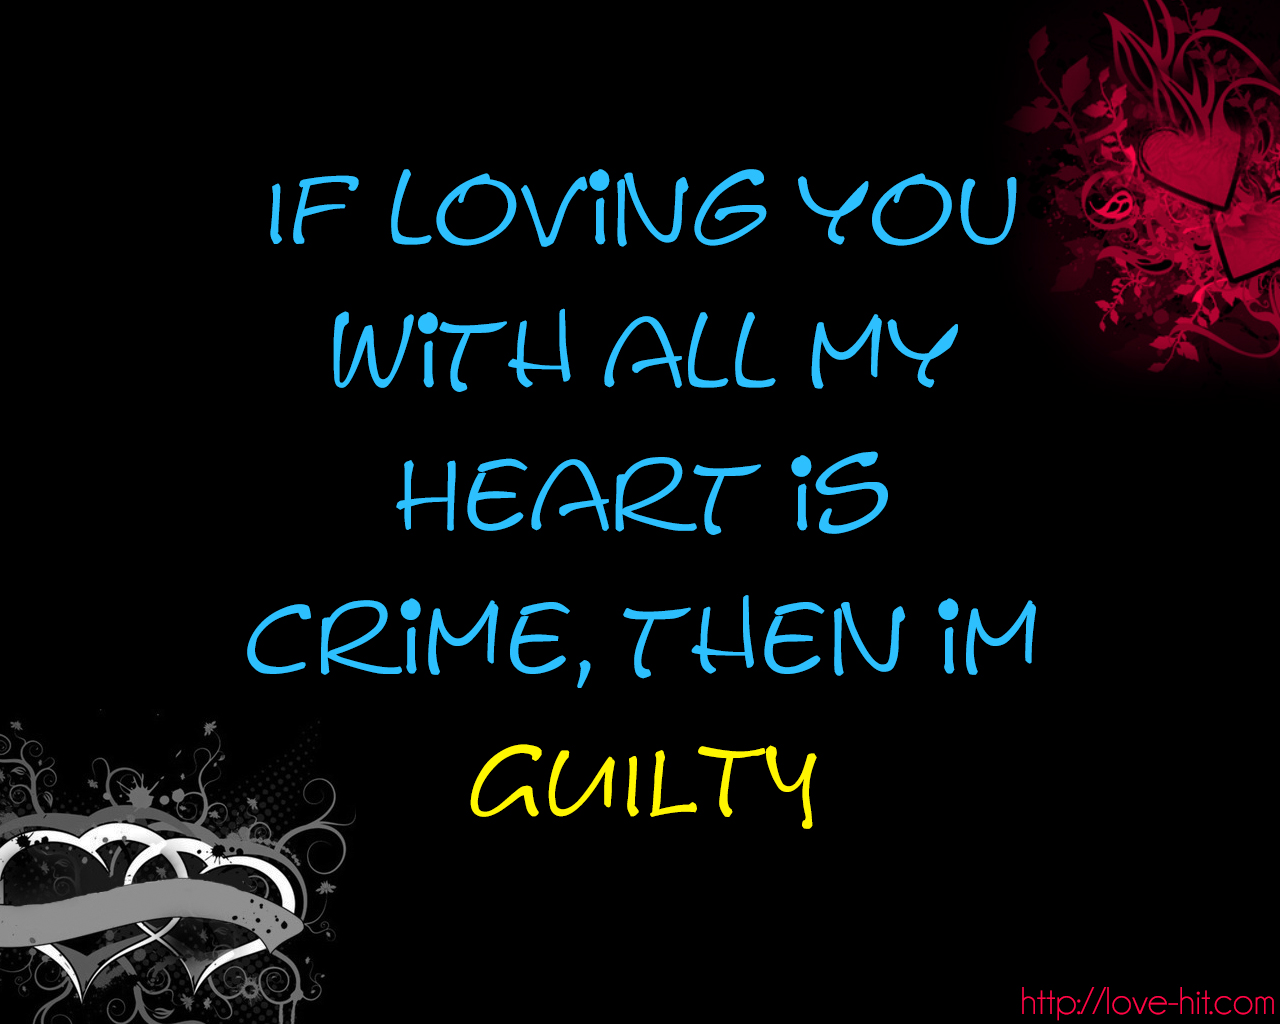 If loving you with all my Heart is crime, then im guilty